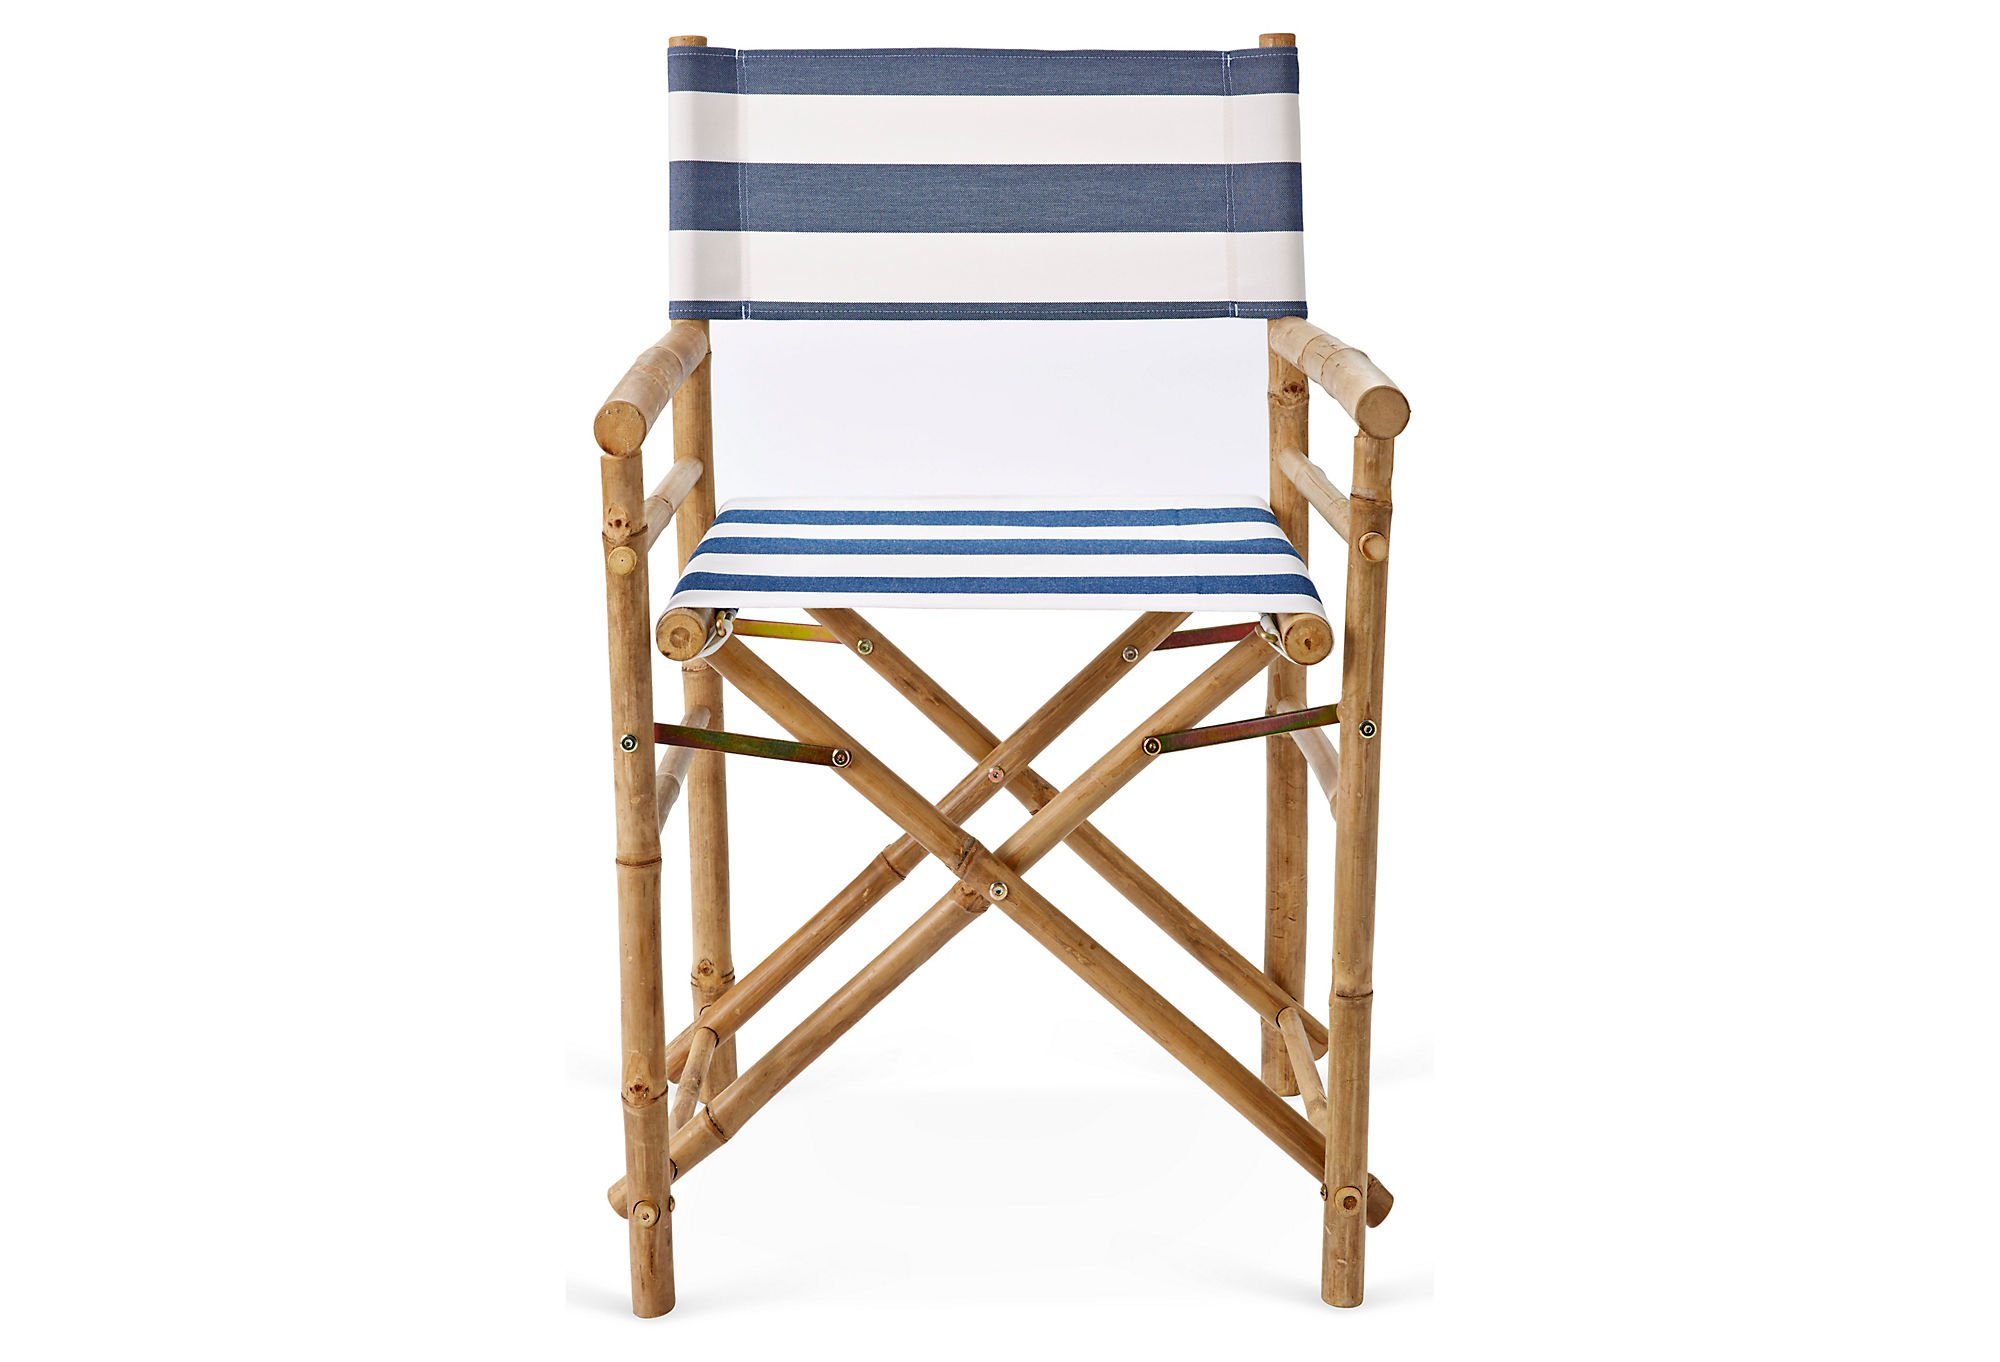 Zew Hand Crafted Foldable Bamboo Director's Chair with Treated Comfortable Striped Canvas, Set of 2 Folding Chairs, Navy/White by Zew